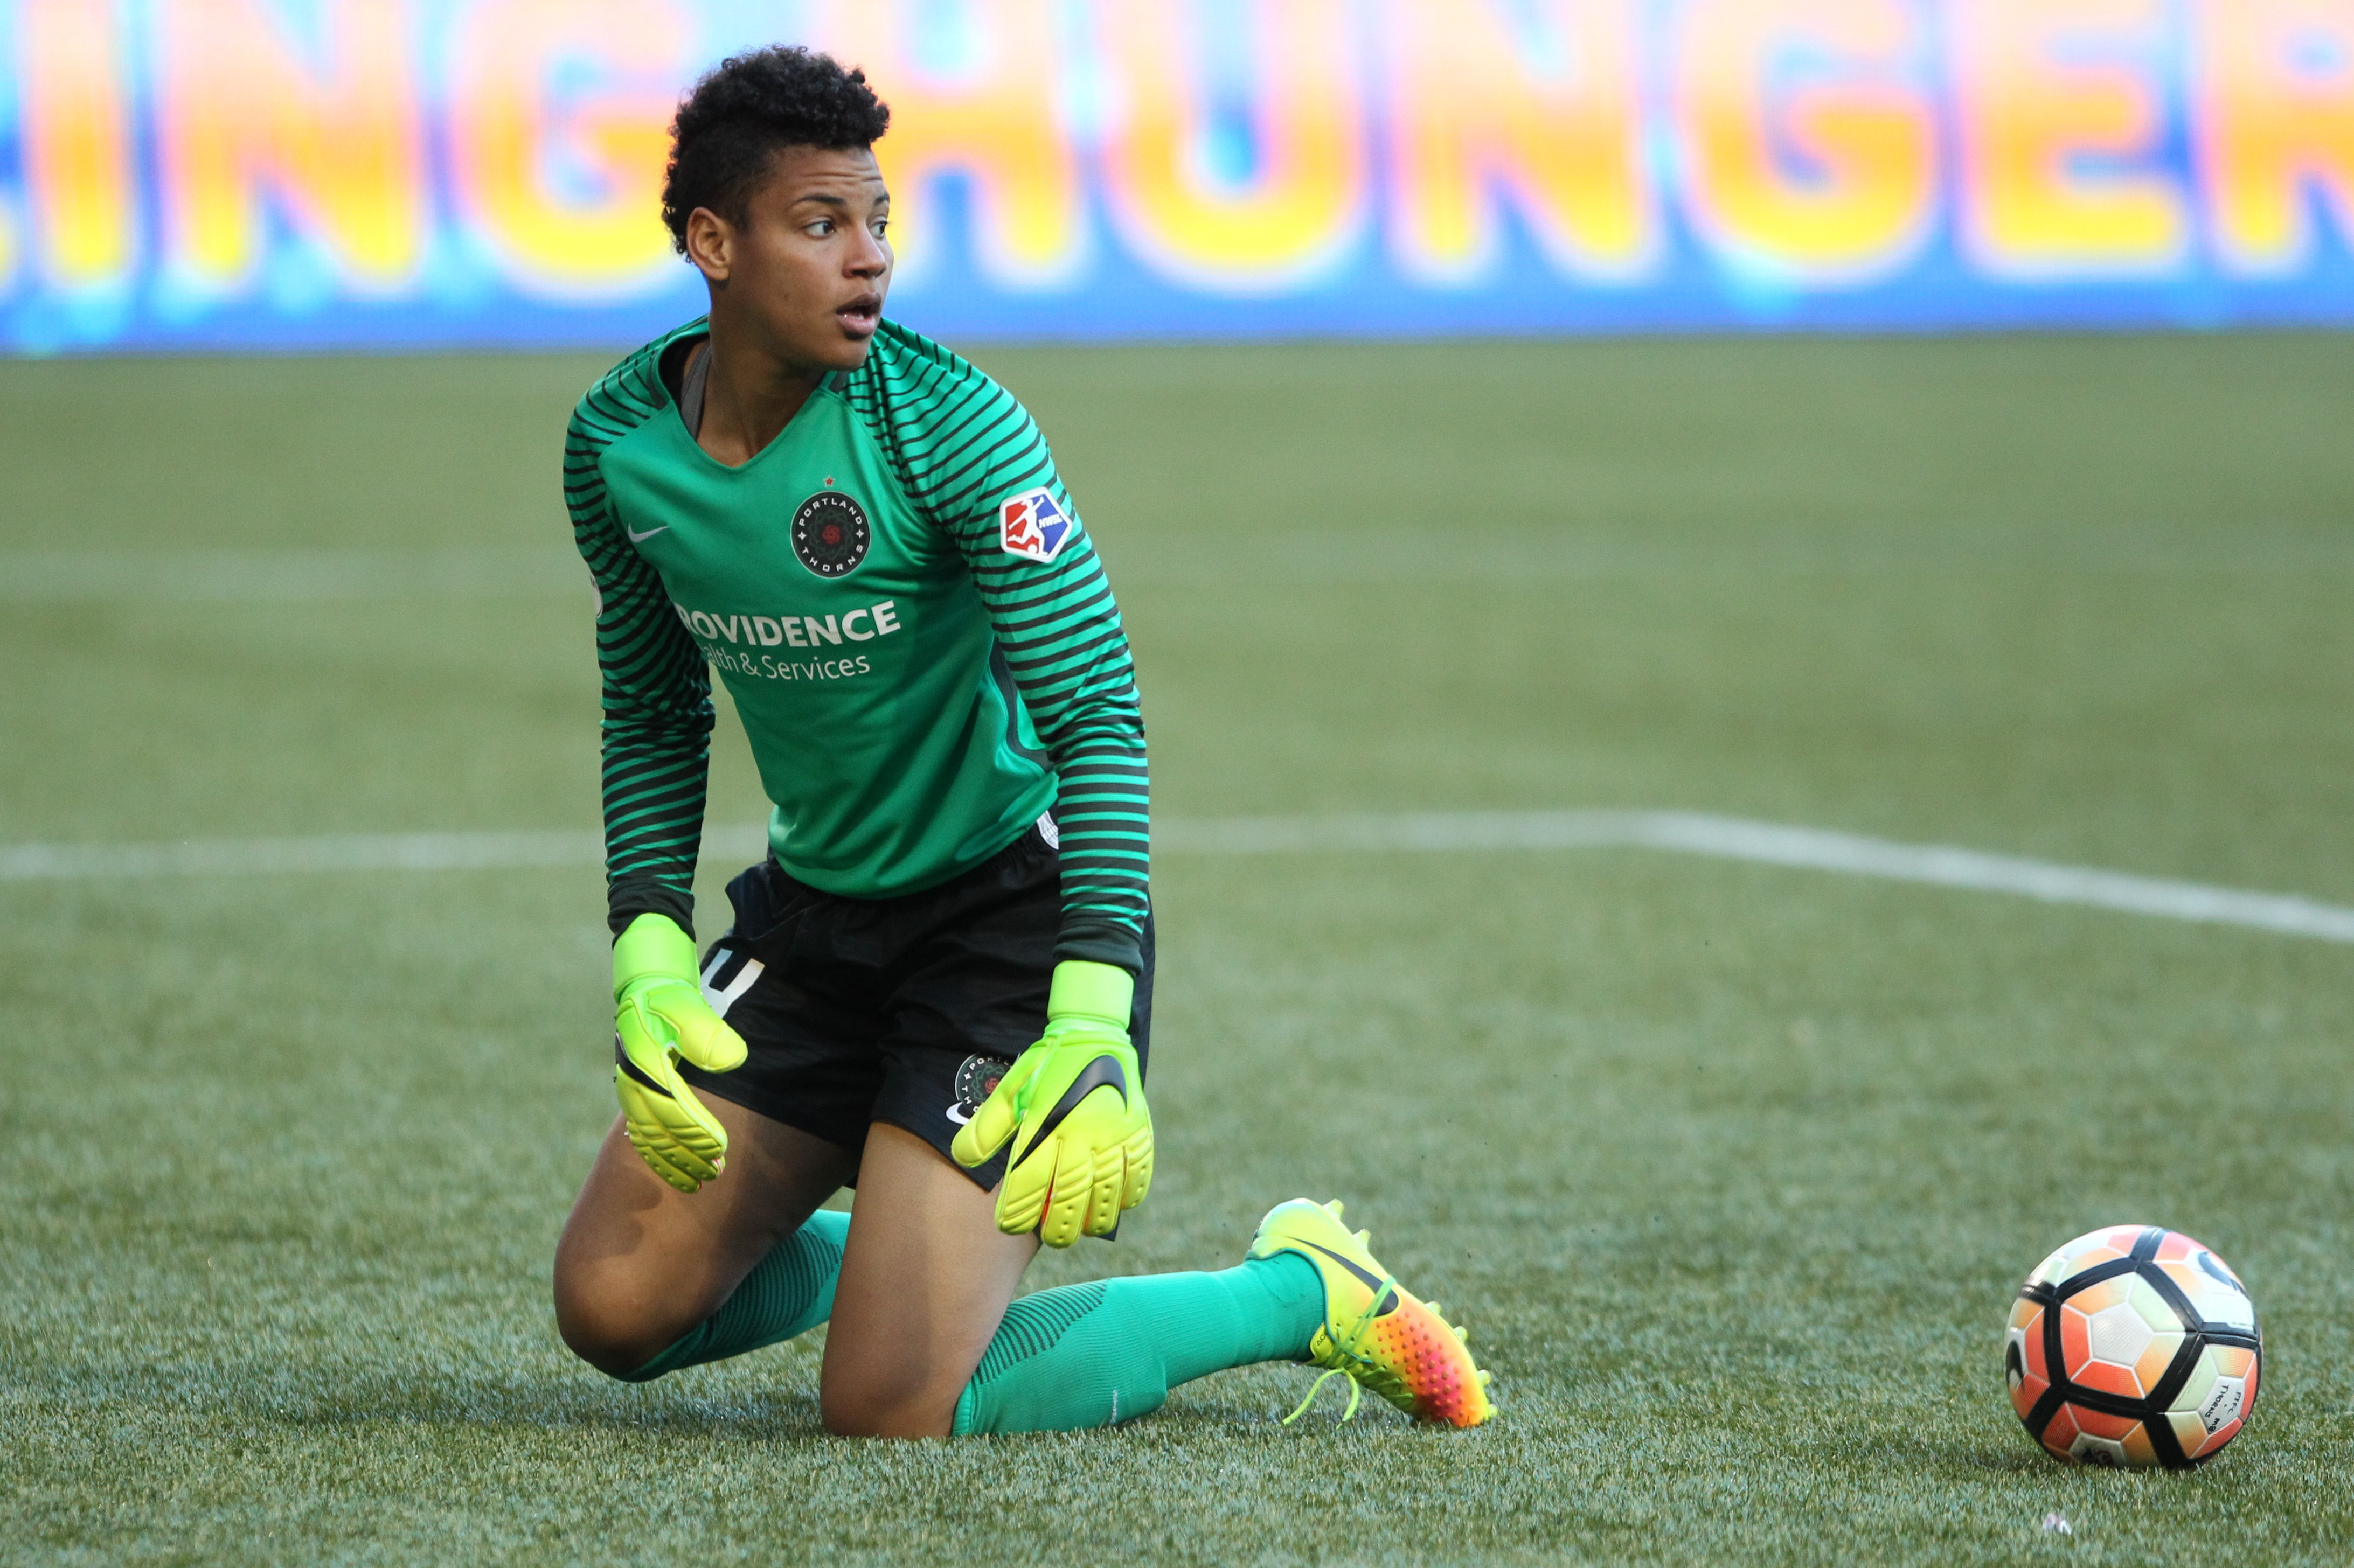 Utah Royals, Portland Thorns investigate allegations that fan yelled racist comments at Thorns goalkeeper